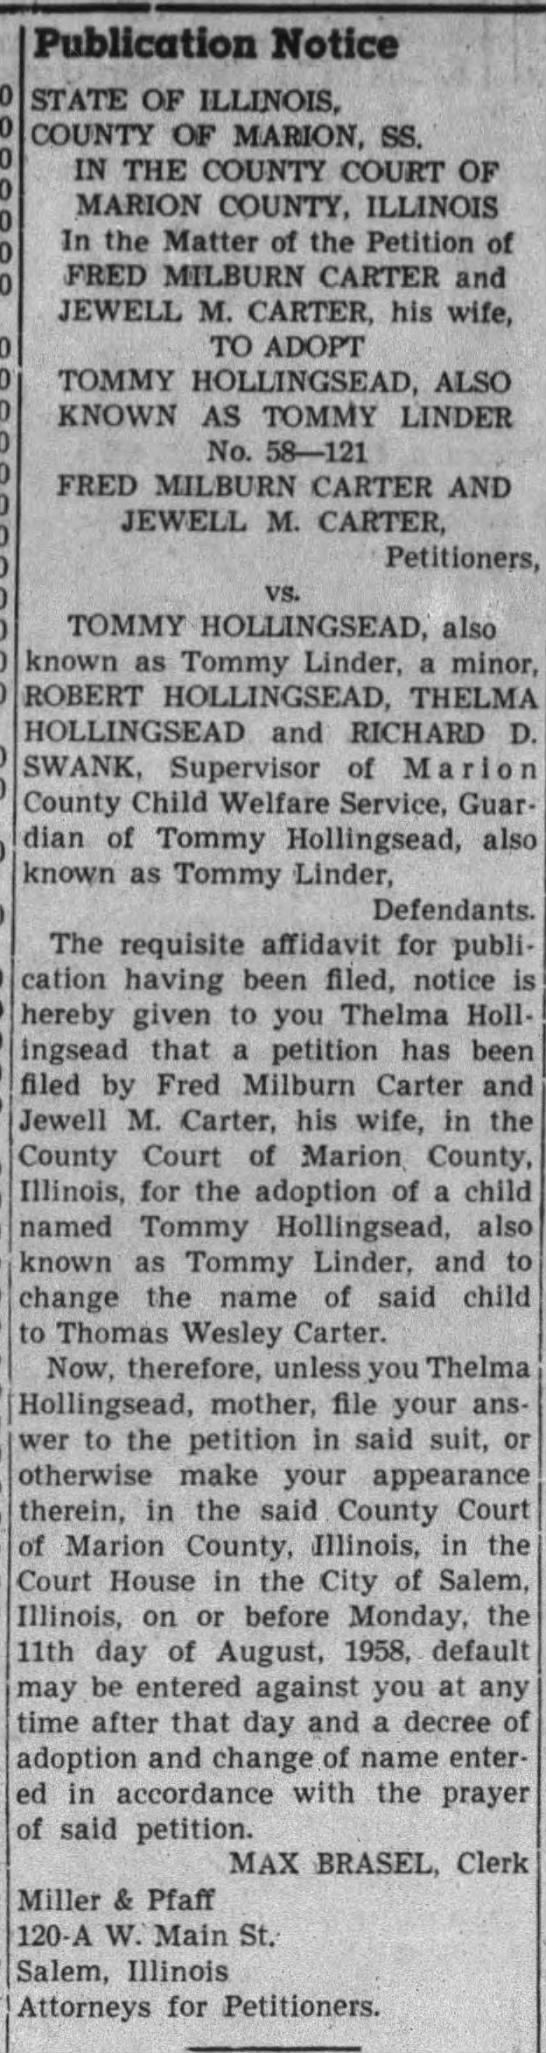 Fred Milburn Cater and wife Jewell M () to adopt Tommy Hollingsead/Linder Aug 11 1958 -